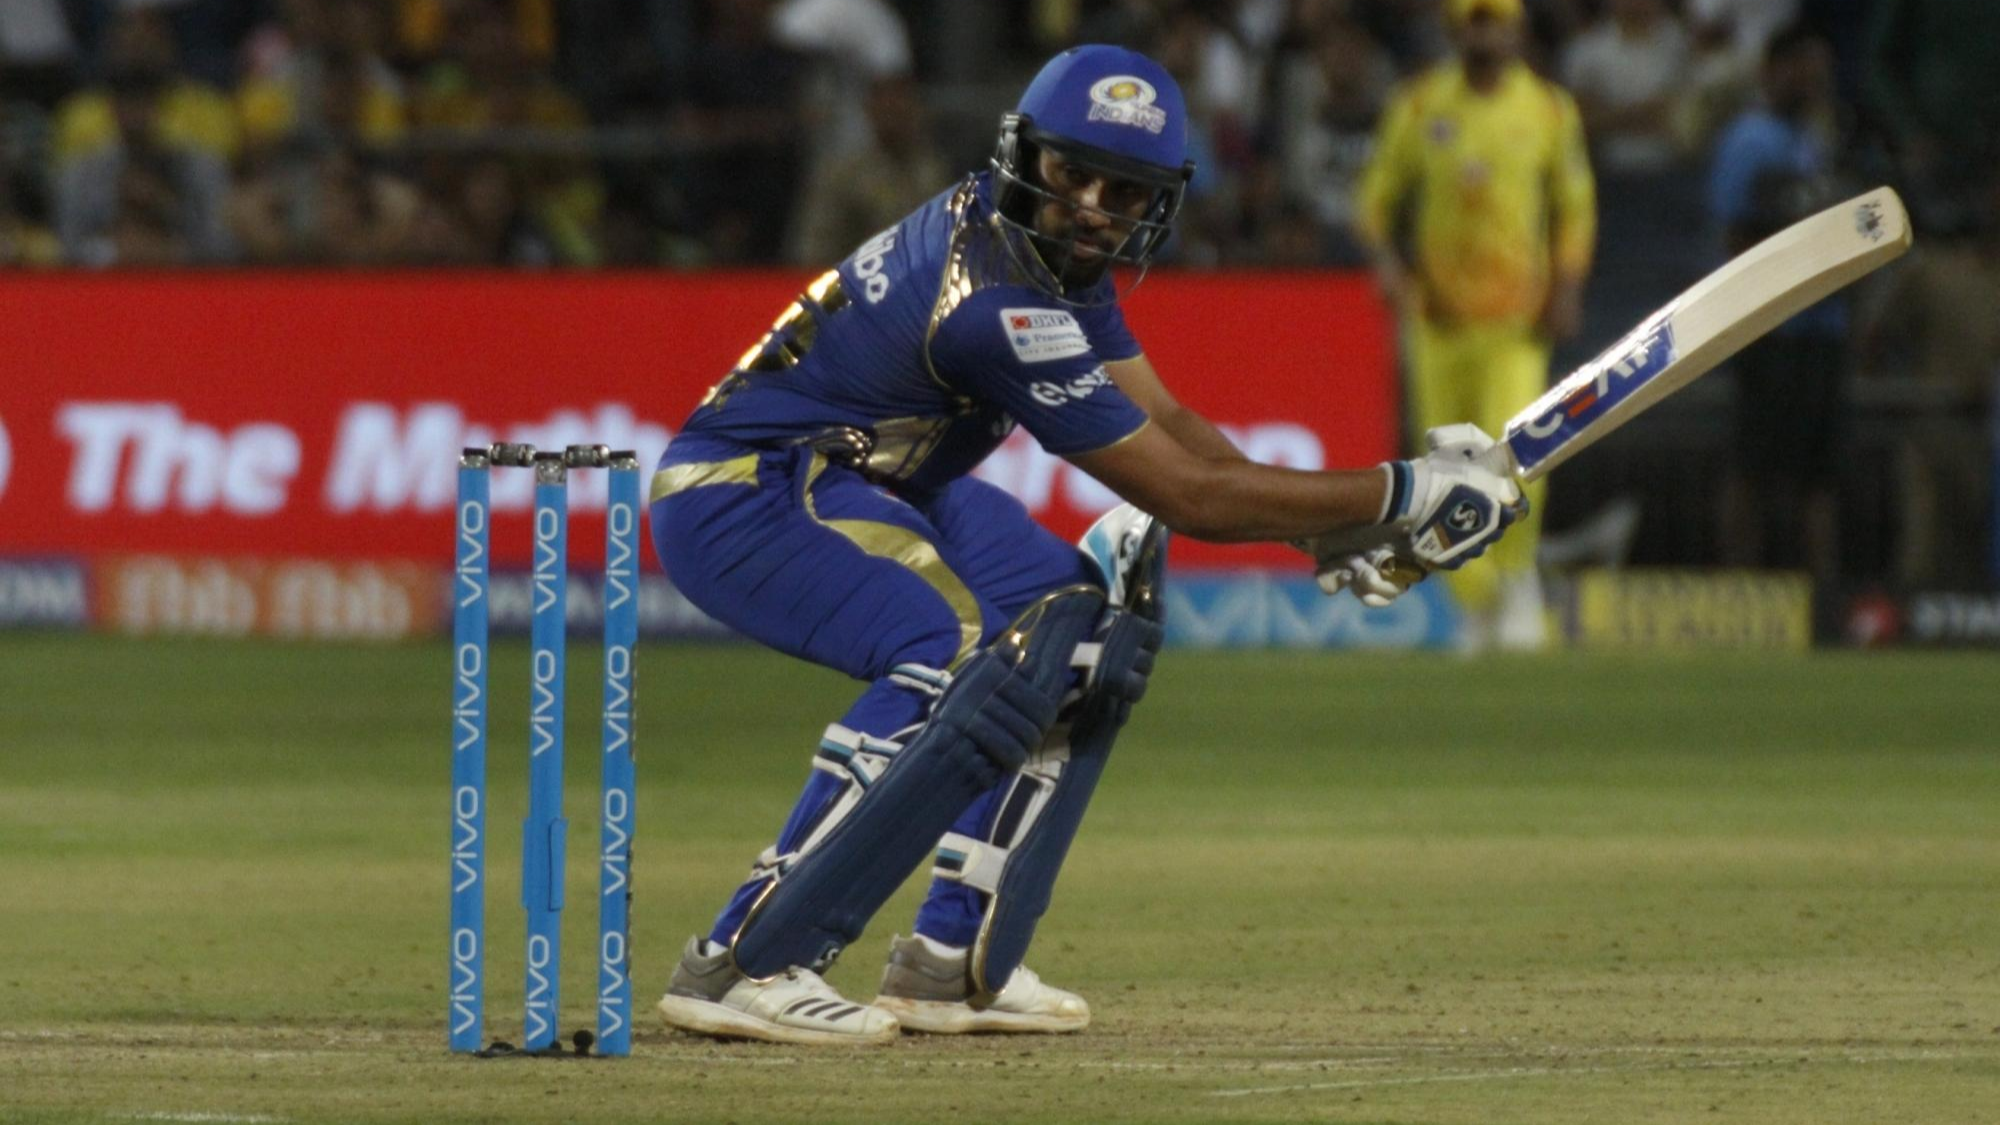 IPL 2018: Rohit Sharma shares a special message for his fans after Mumbai Indians' elimination from IPL 11